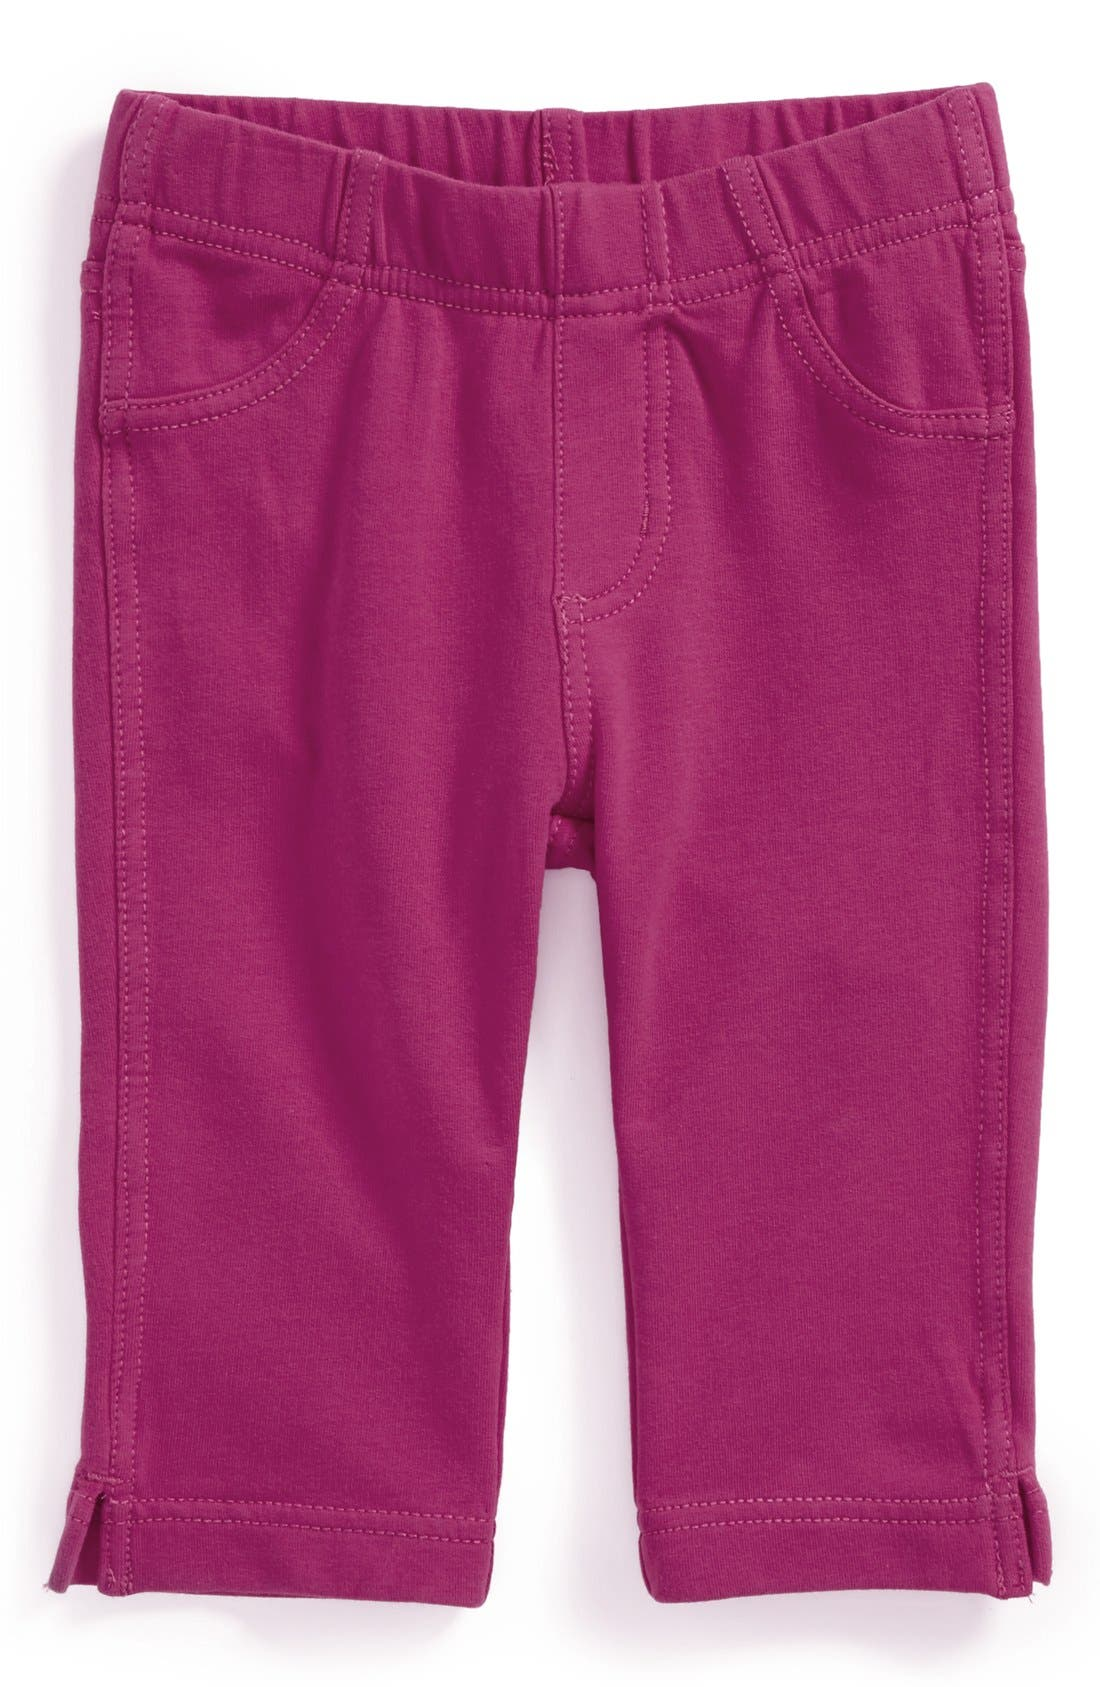 Alternate Image 1 Selected - Tea Collection 'Pedal Pusher' Skinny Stretch Leggings (Toddler Girls)